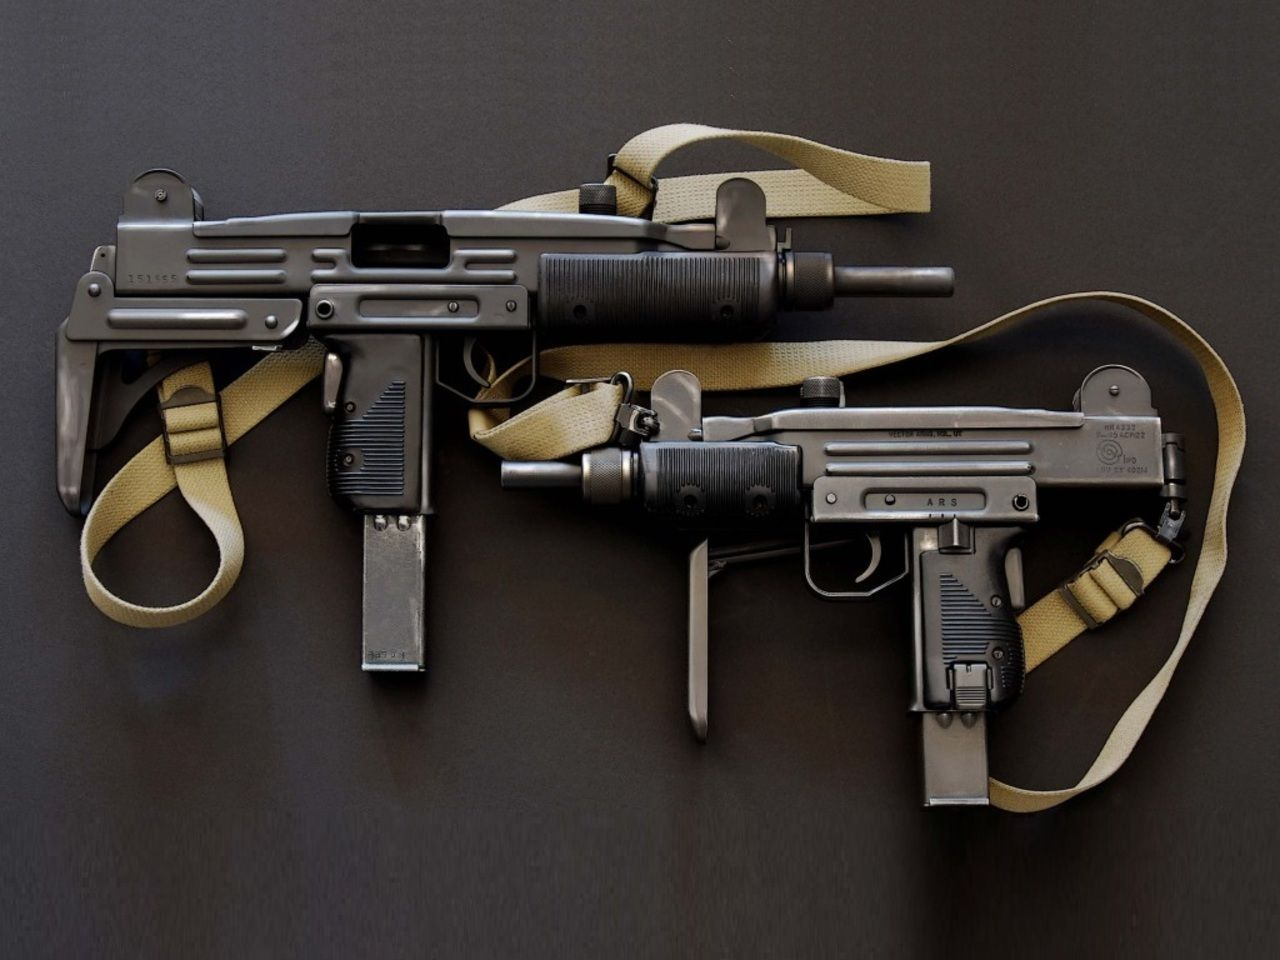 Pin on Guns, Knives, and Assorted Weaponry